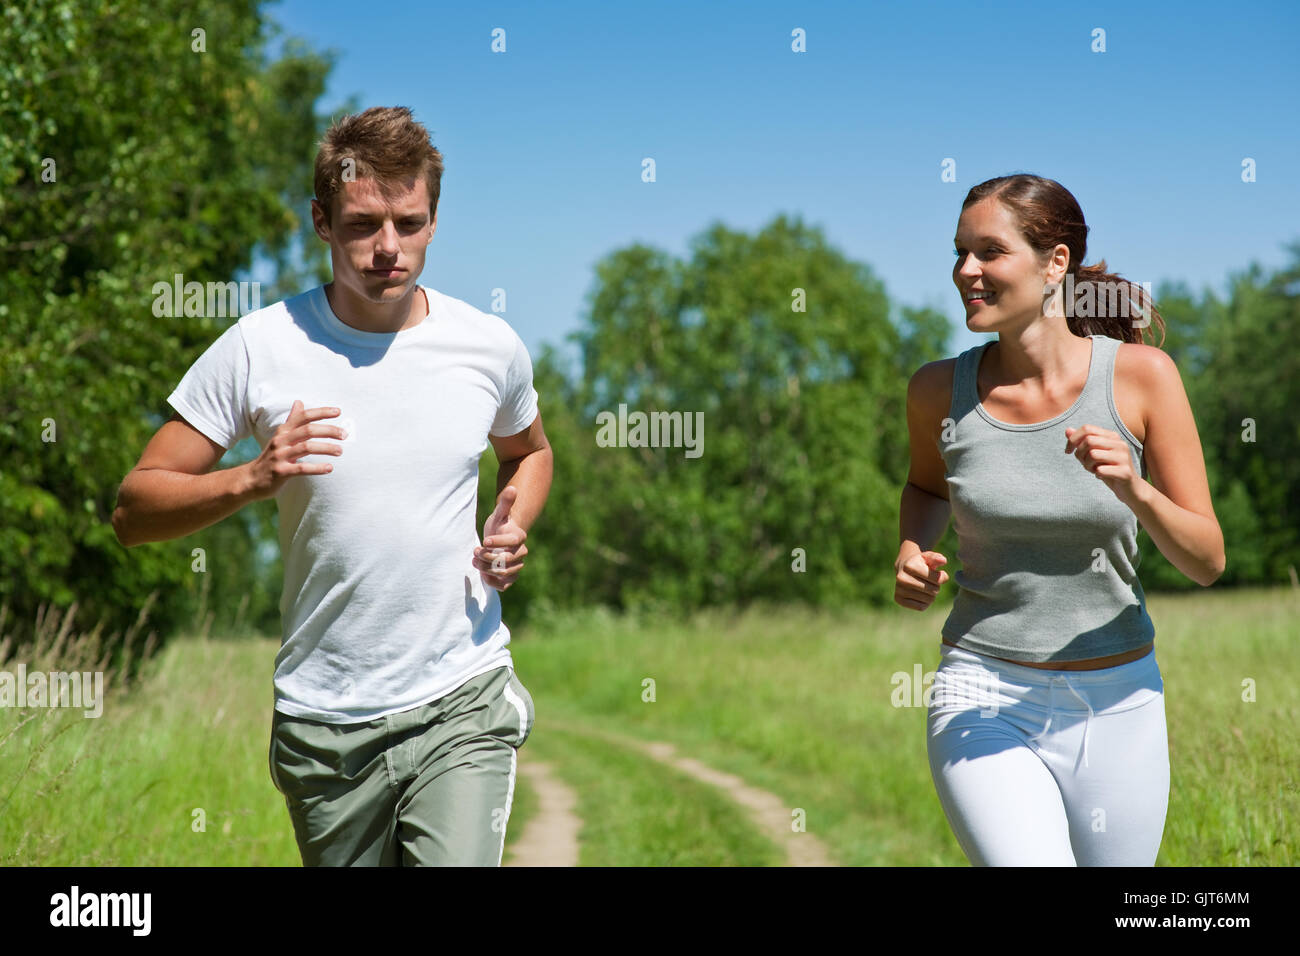 woman sport sports - Stock Image